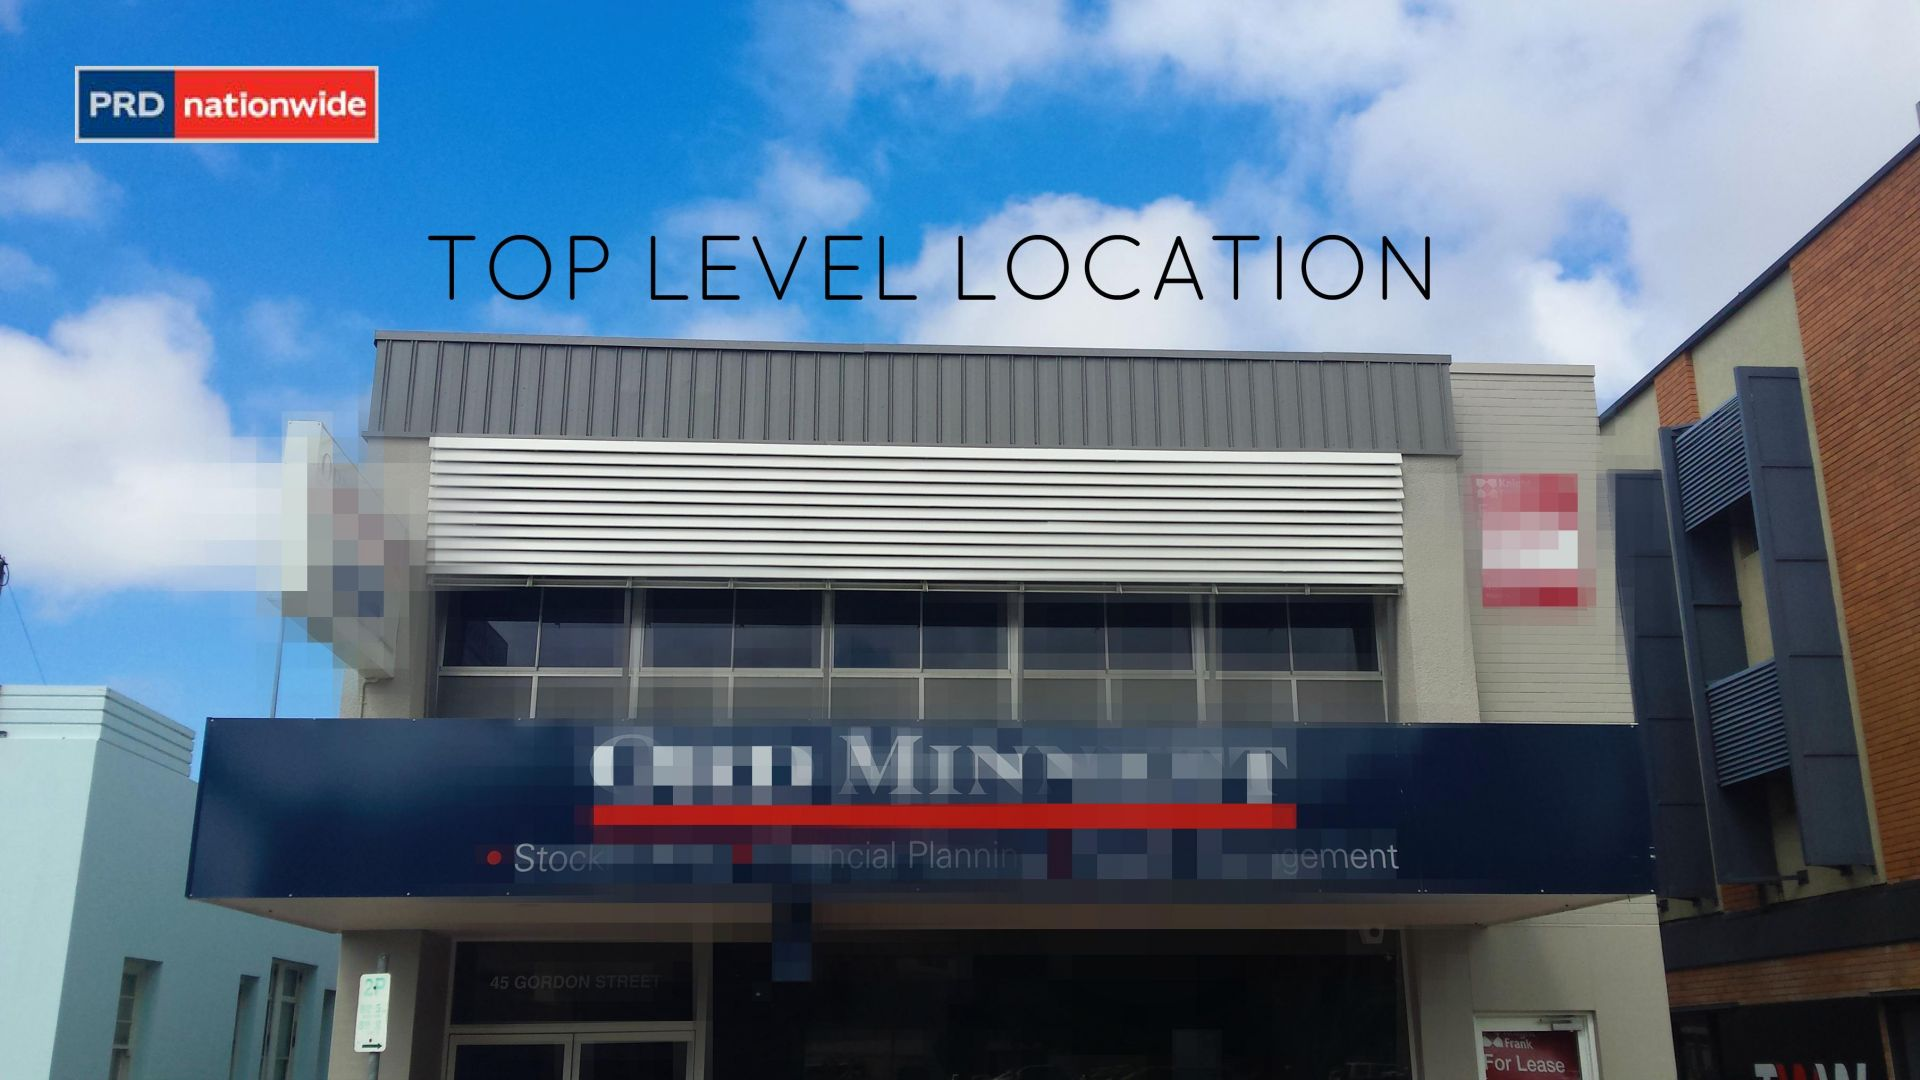 PRIME TOP LEVEL LOCATION - PERFECT OFFICE SPACE + PARKING